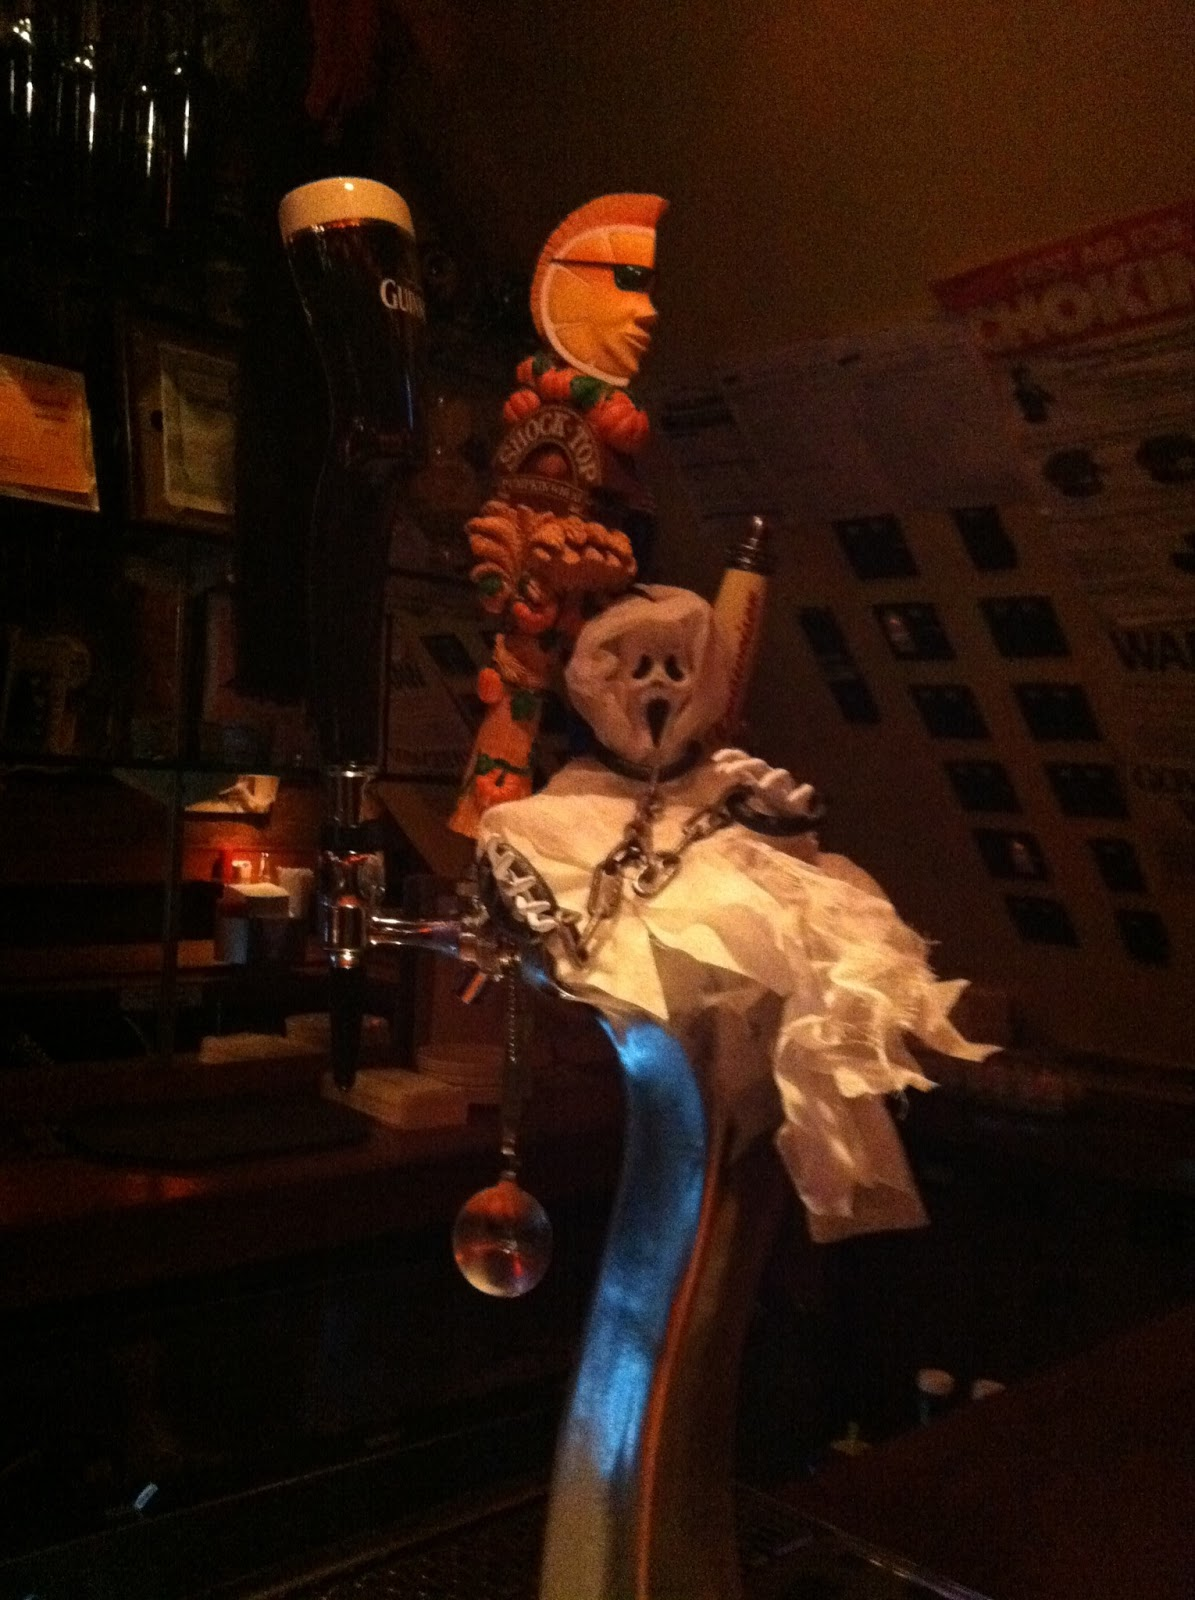 The Vouchsafery: Halloween Decorations of the Bar Kind